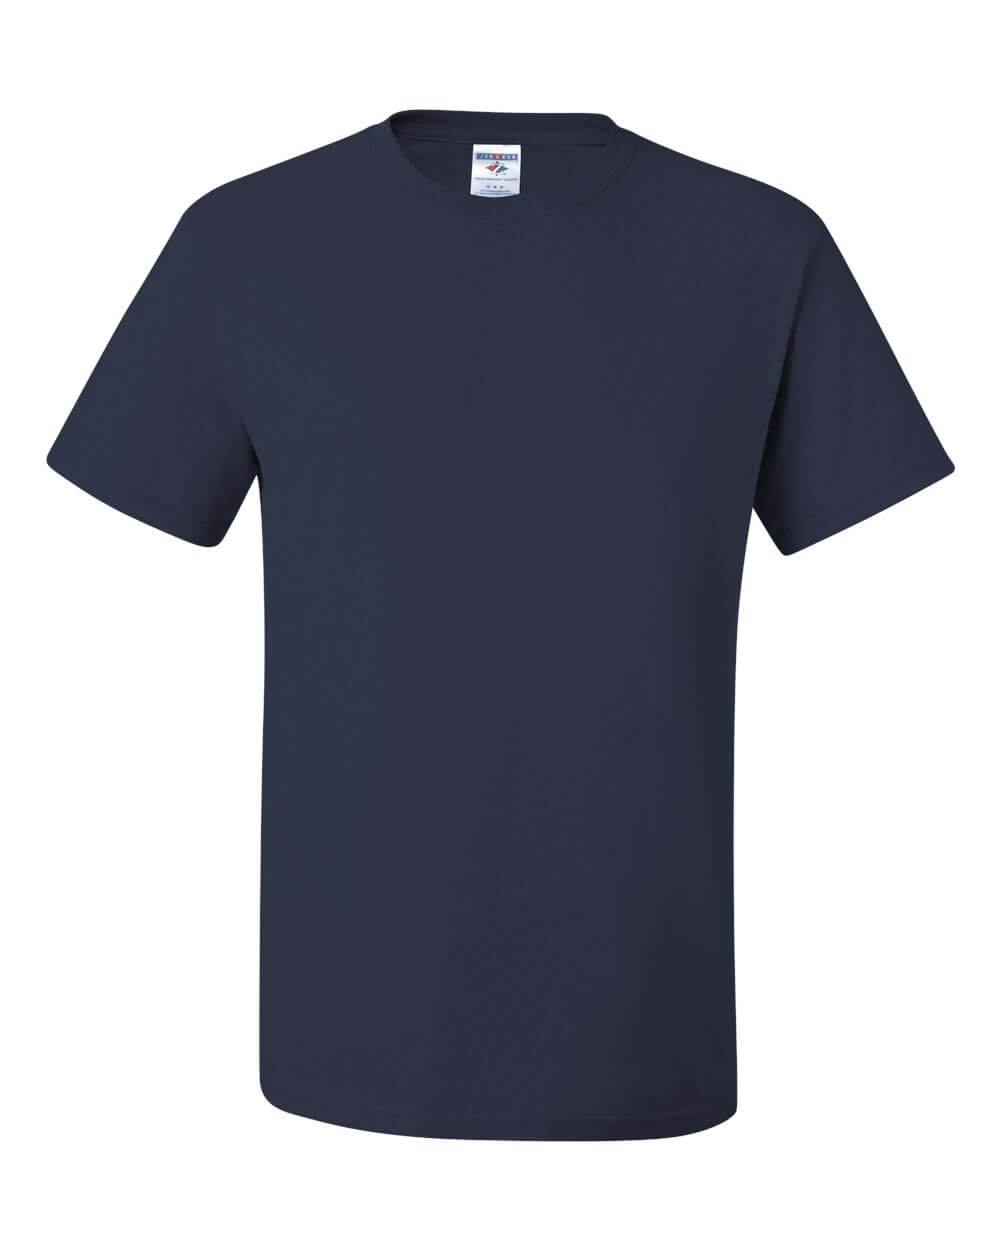 Jerzees_29MR_Navy Blue Custom T Shirts